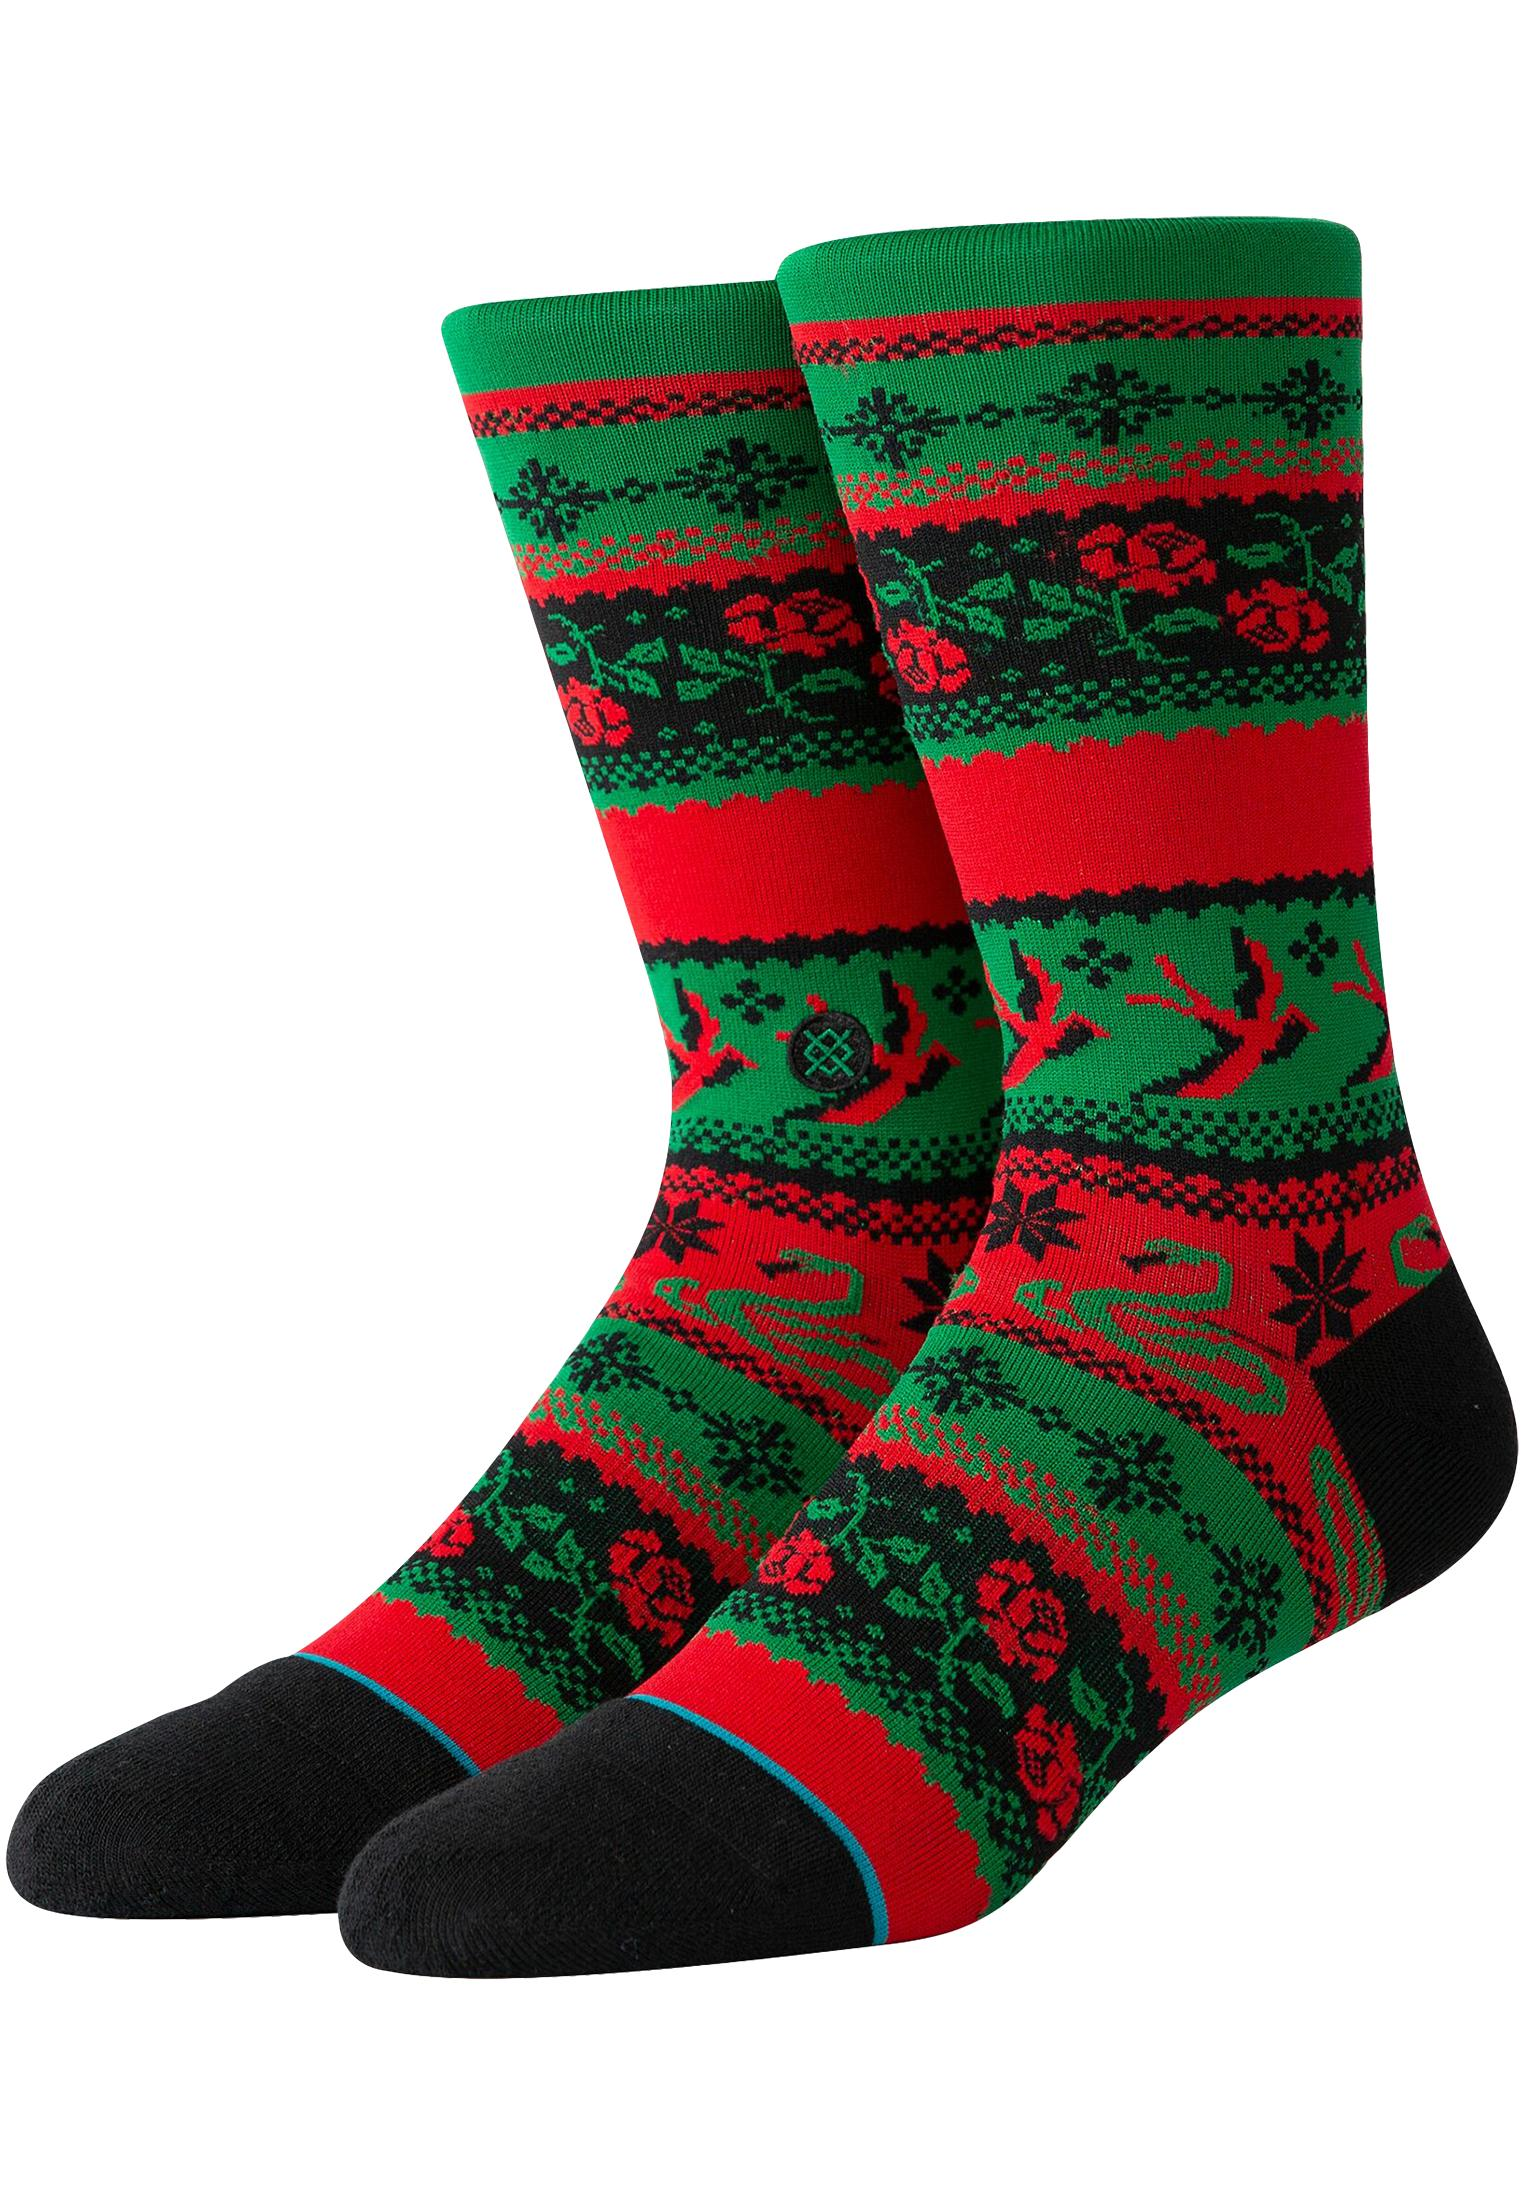 stance-socken-stocking-stuffer-green-vorderansicht-0631884.jpg